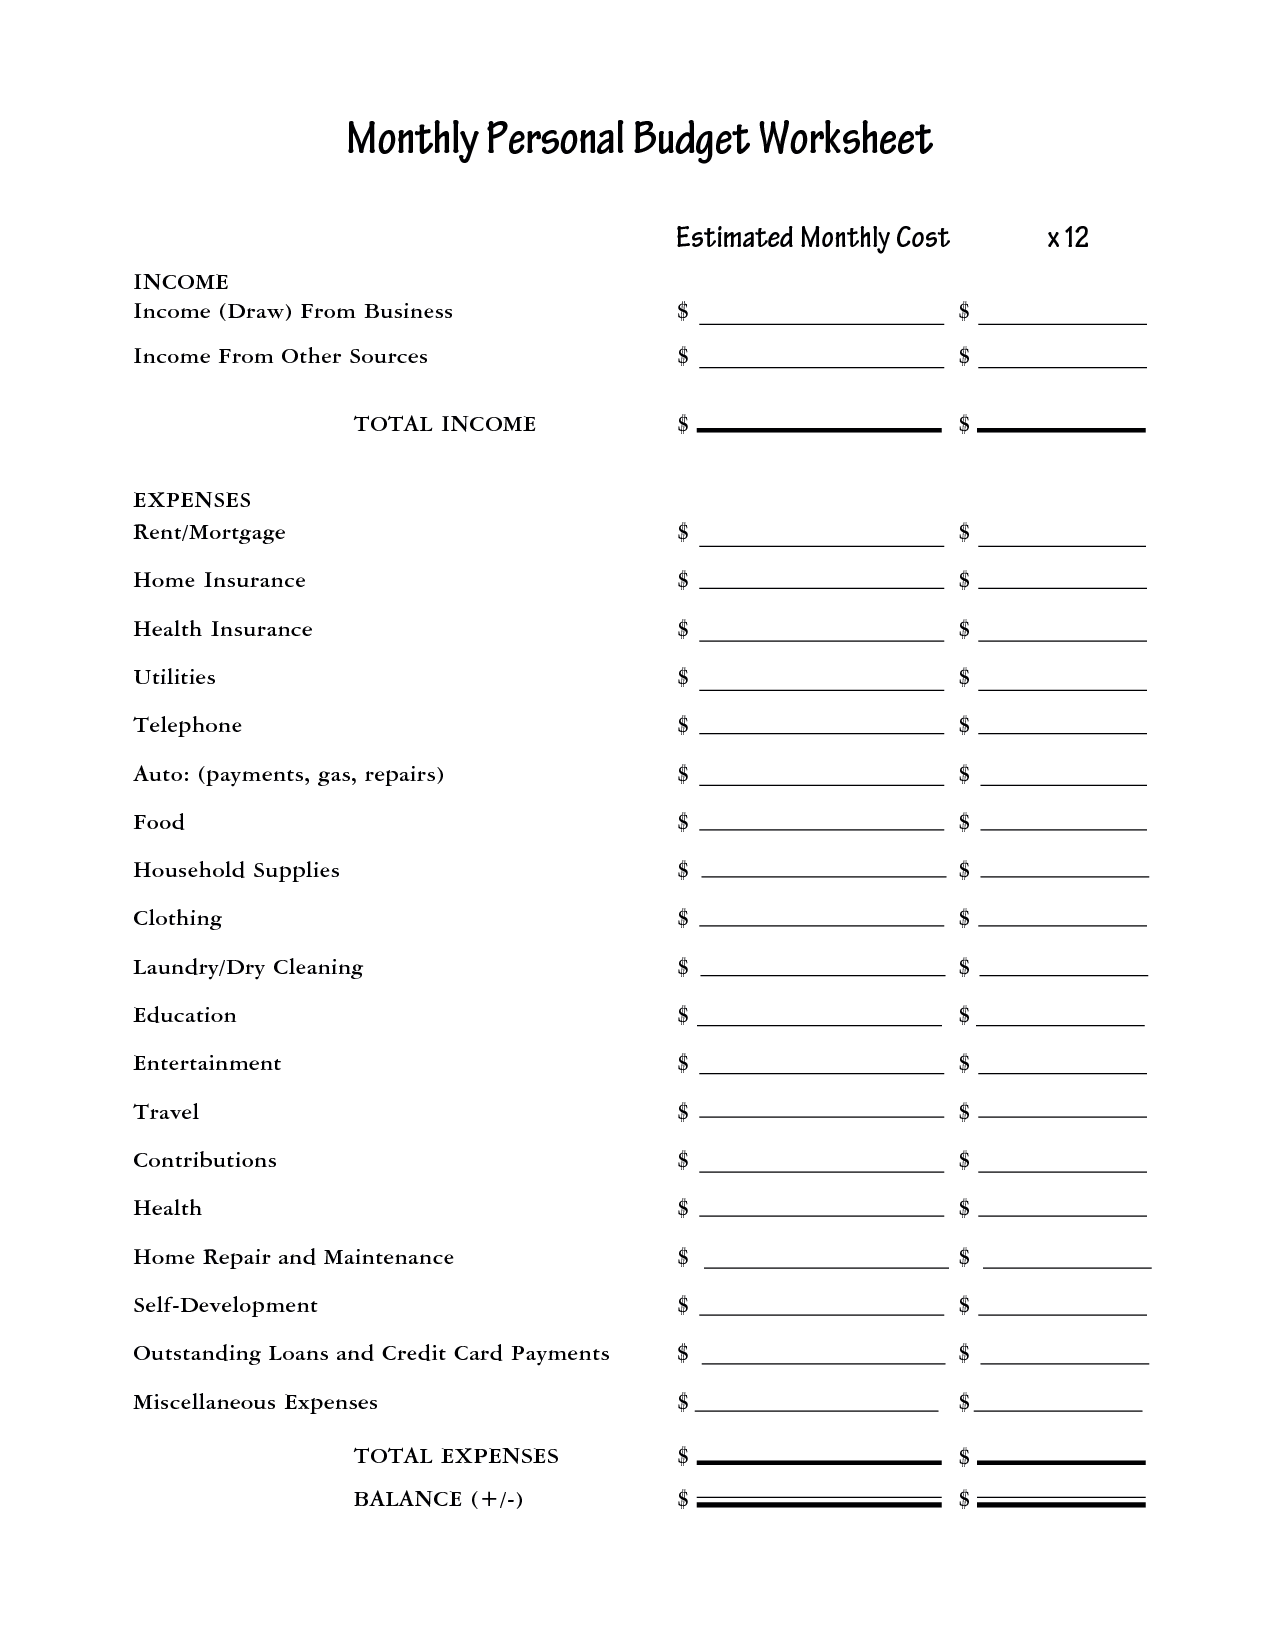 Monthly Personal Expenses Worksheet